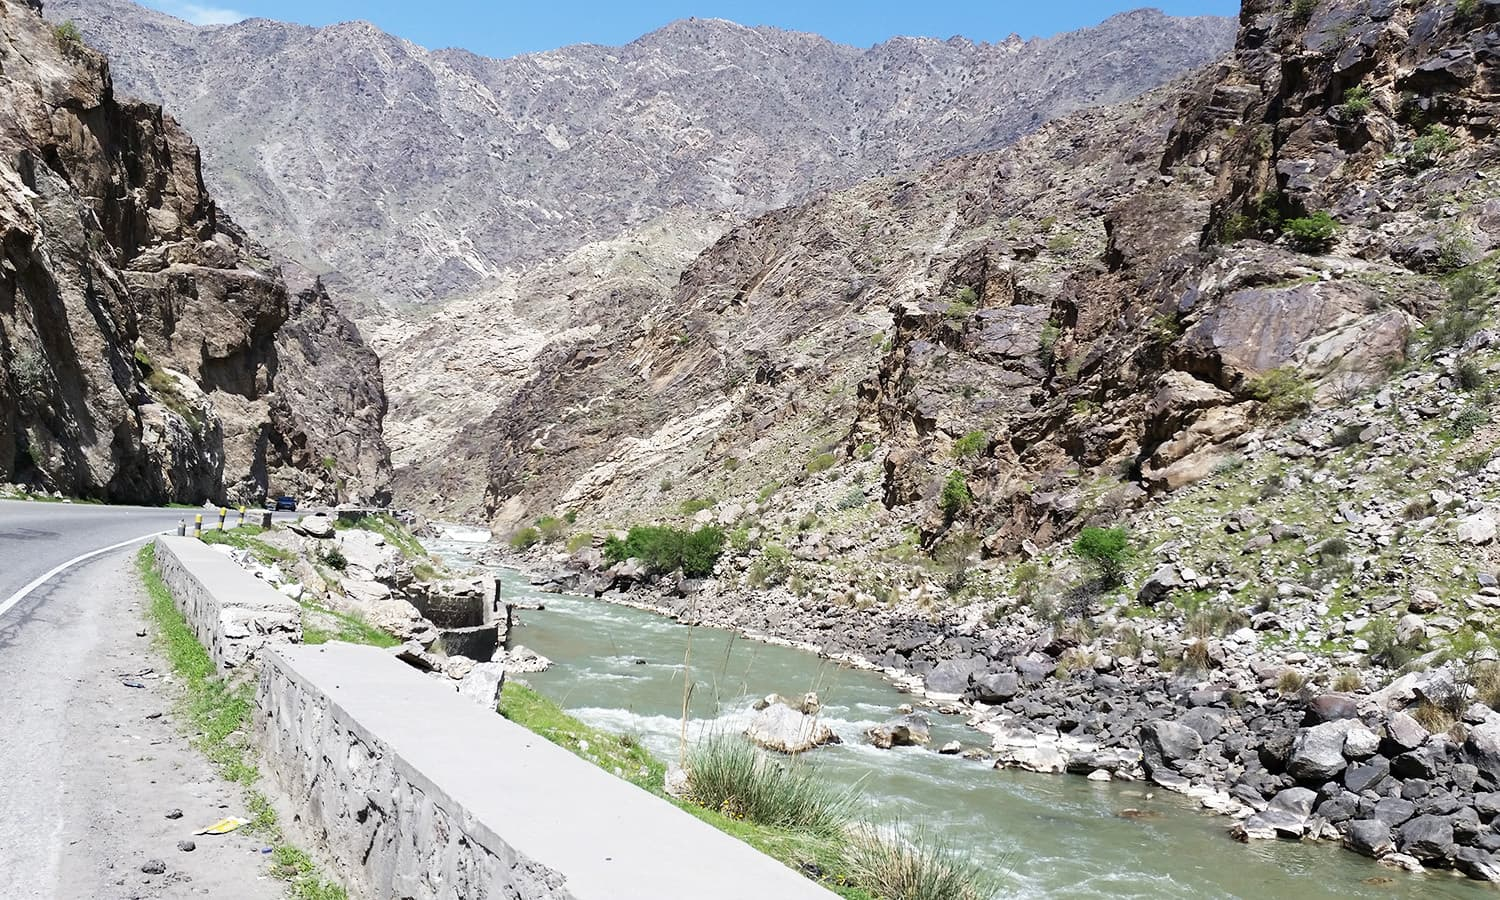 Kabul to Jalalabad road.